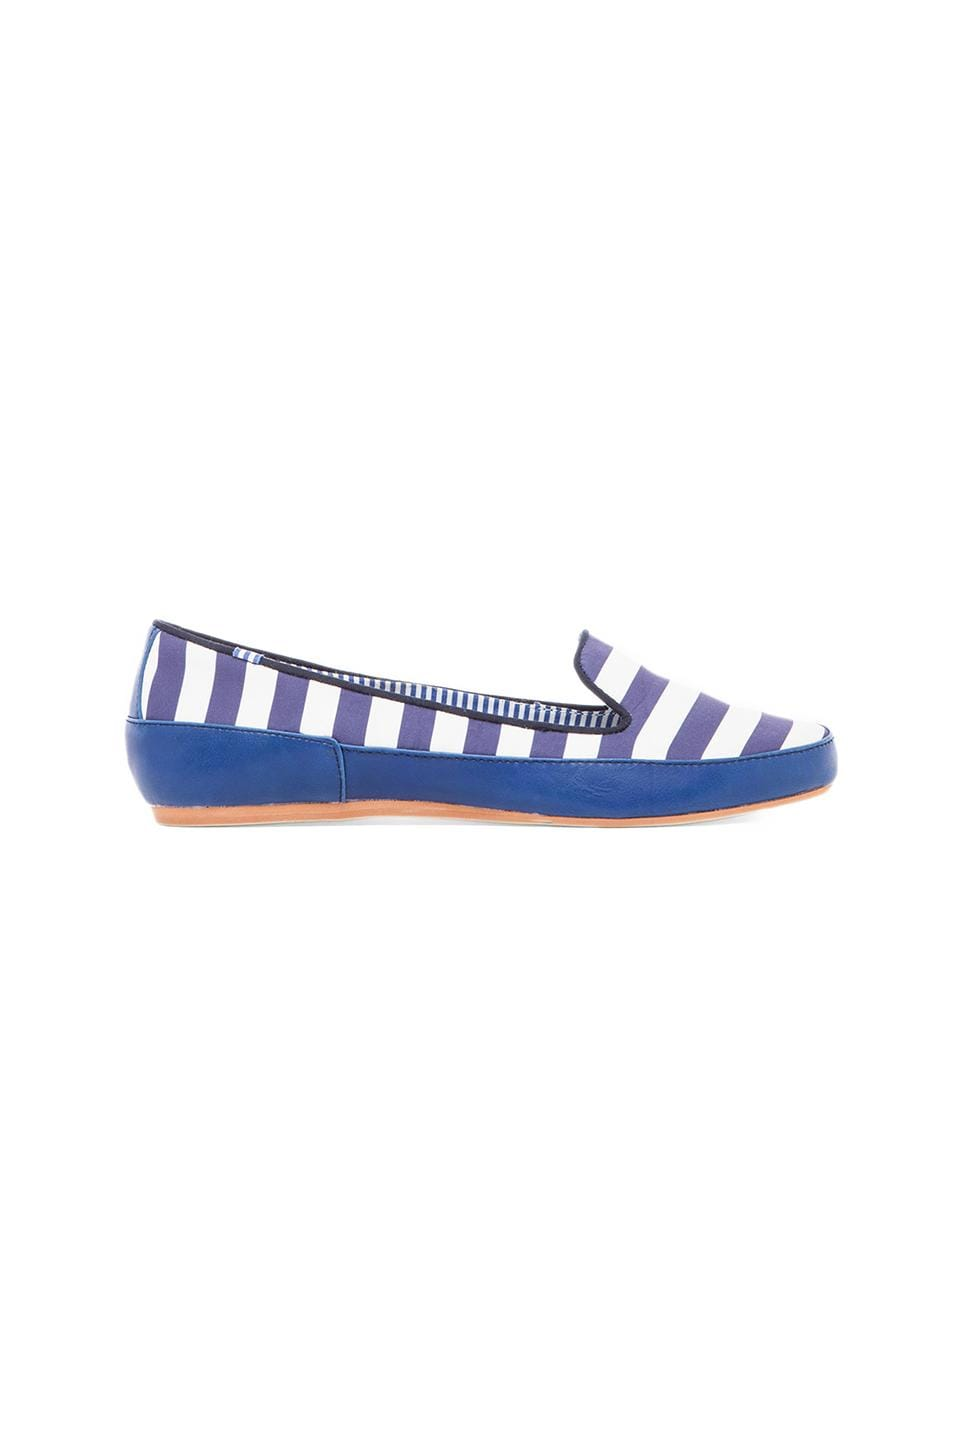 Charles Philip Shanghai Gaby Loafer in Navy Stripes